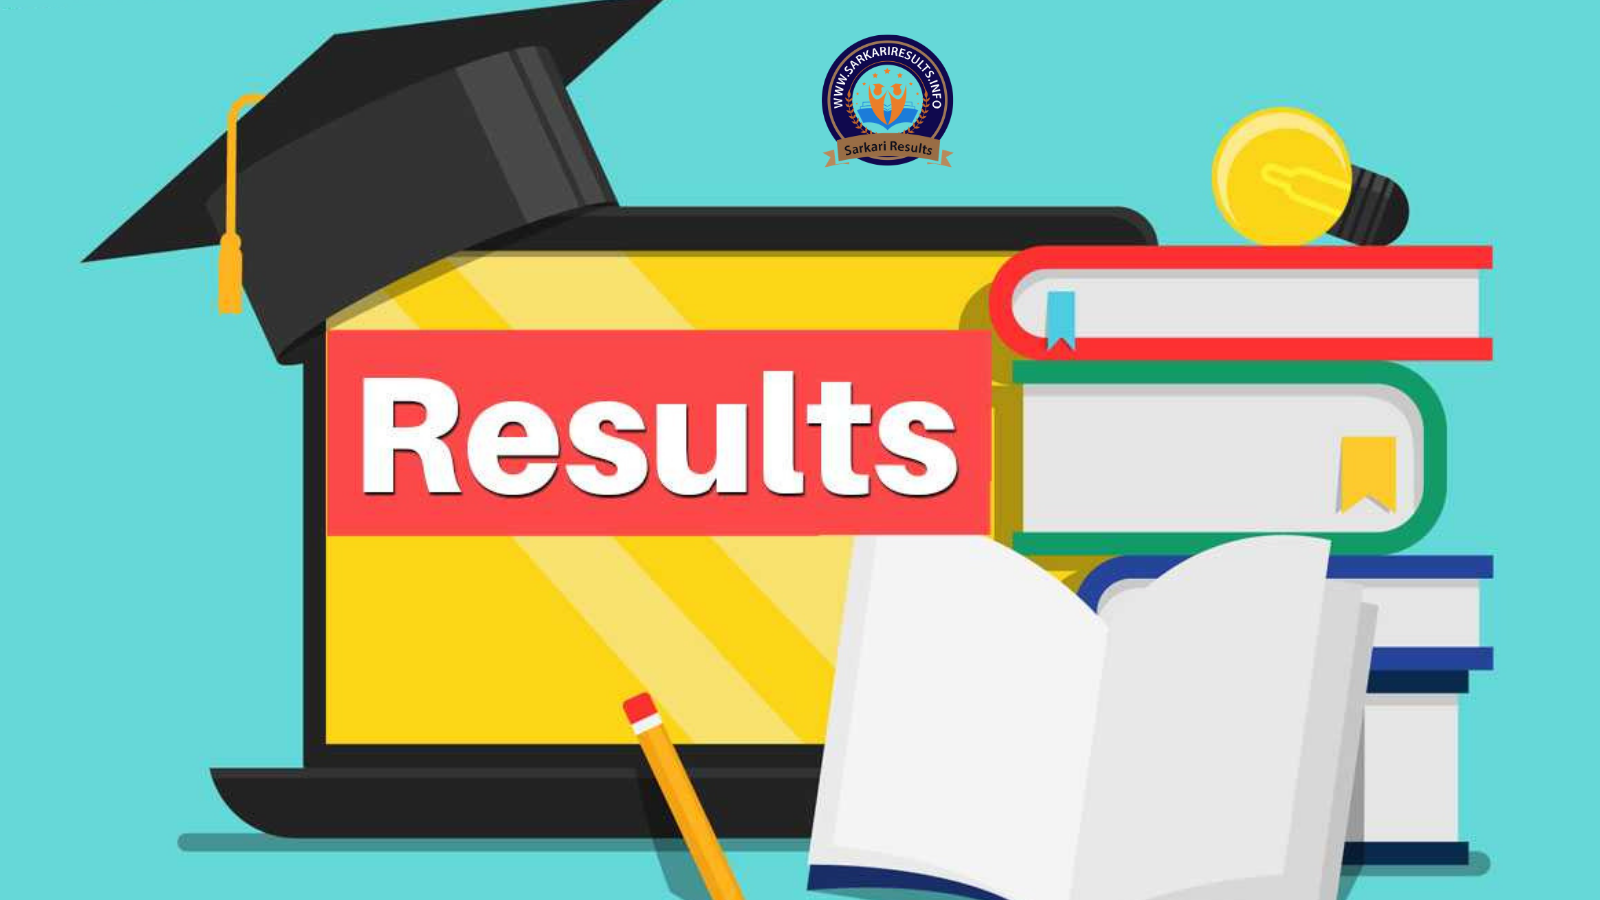 Detailed Guide on How to Clear UGC NET Exam with Good Sarkari Results Online